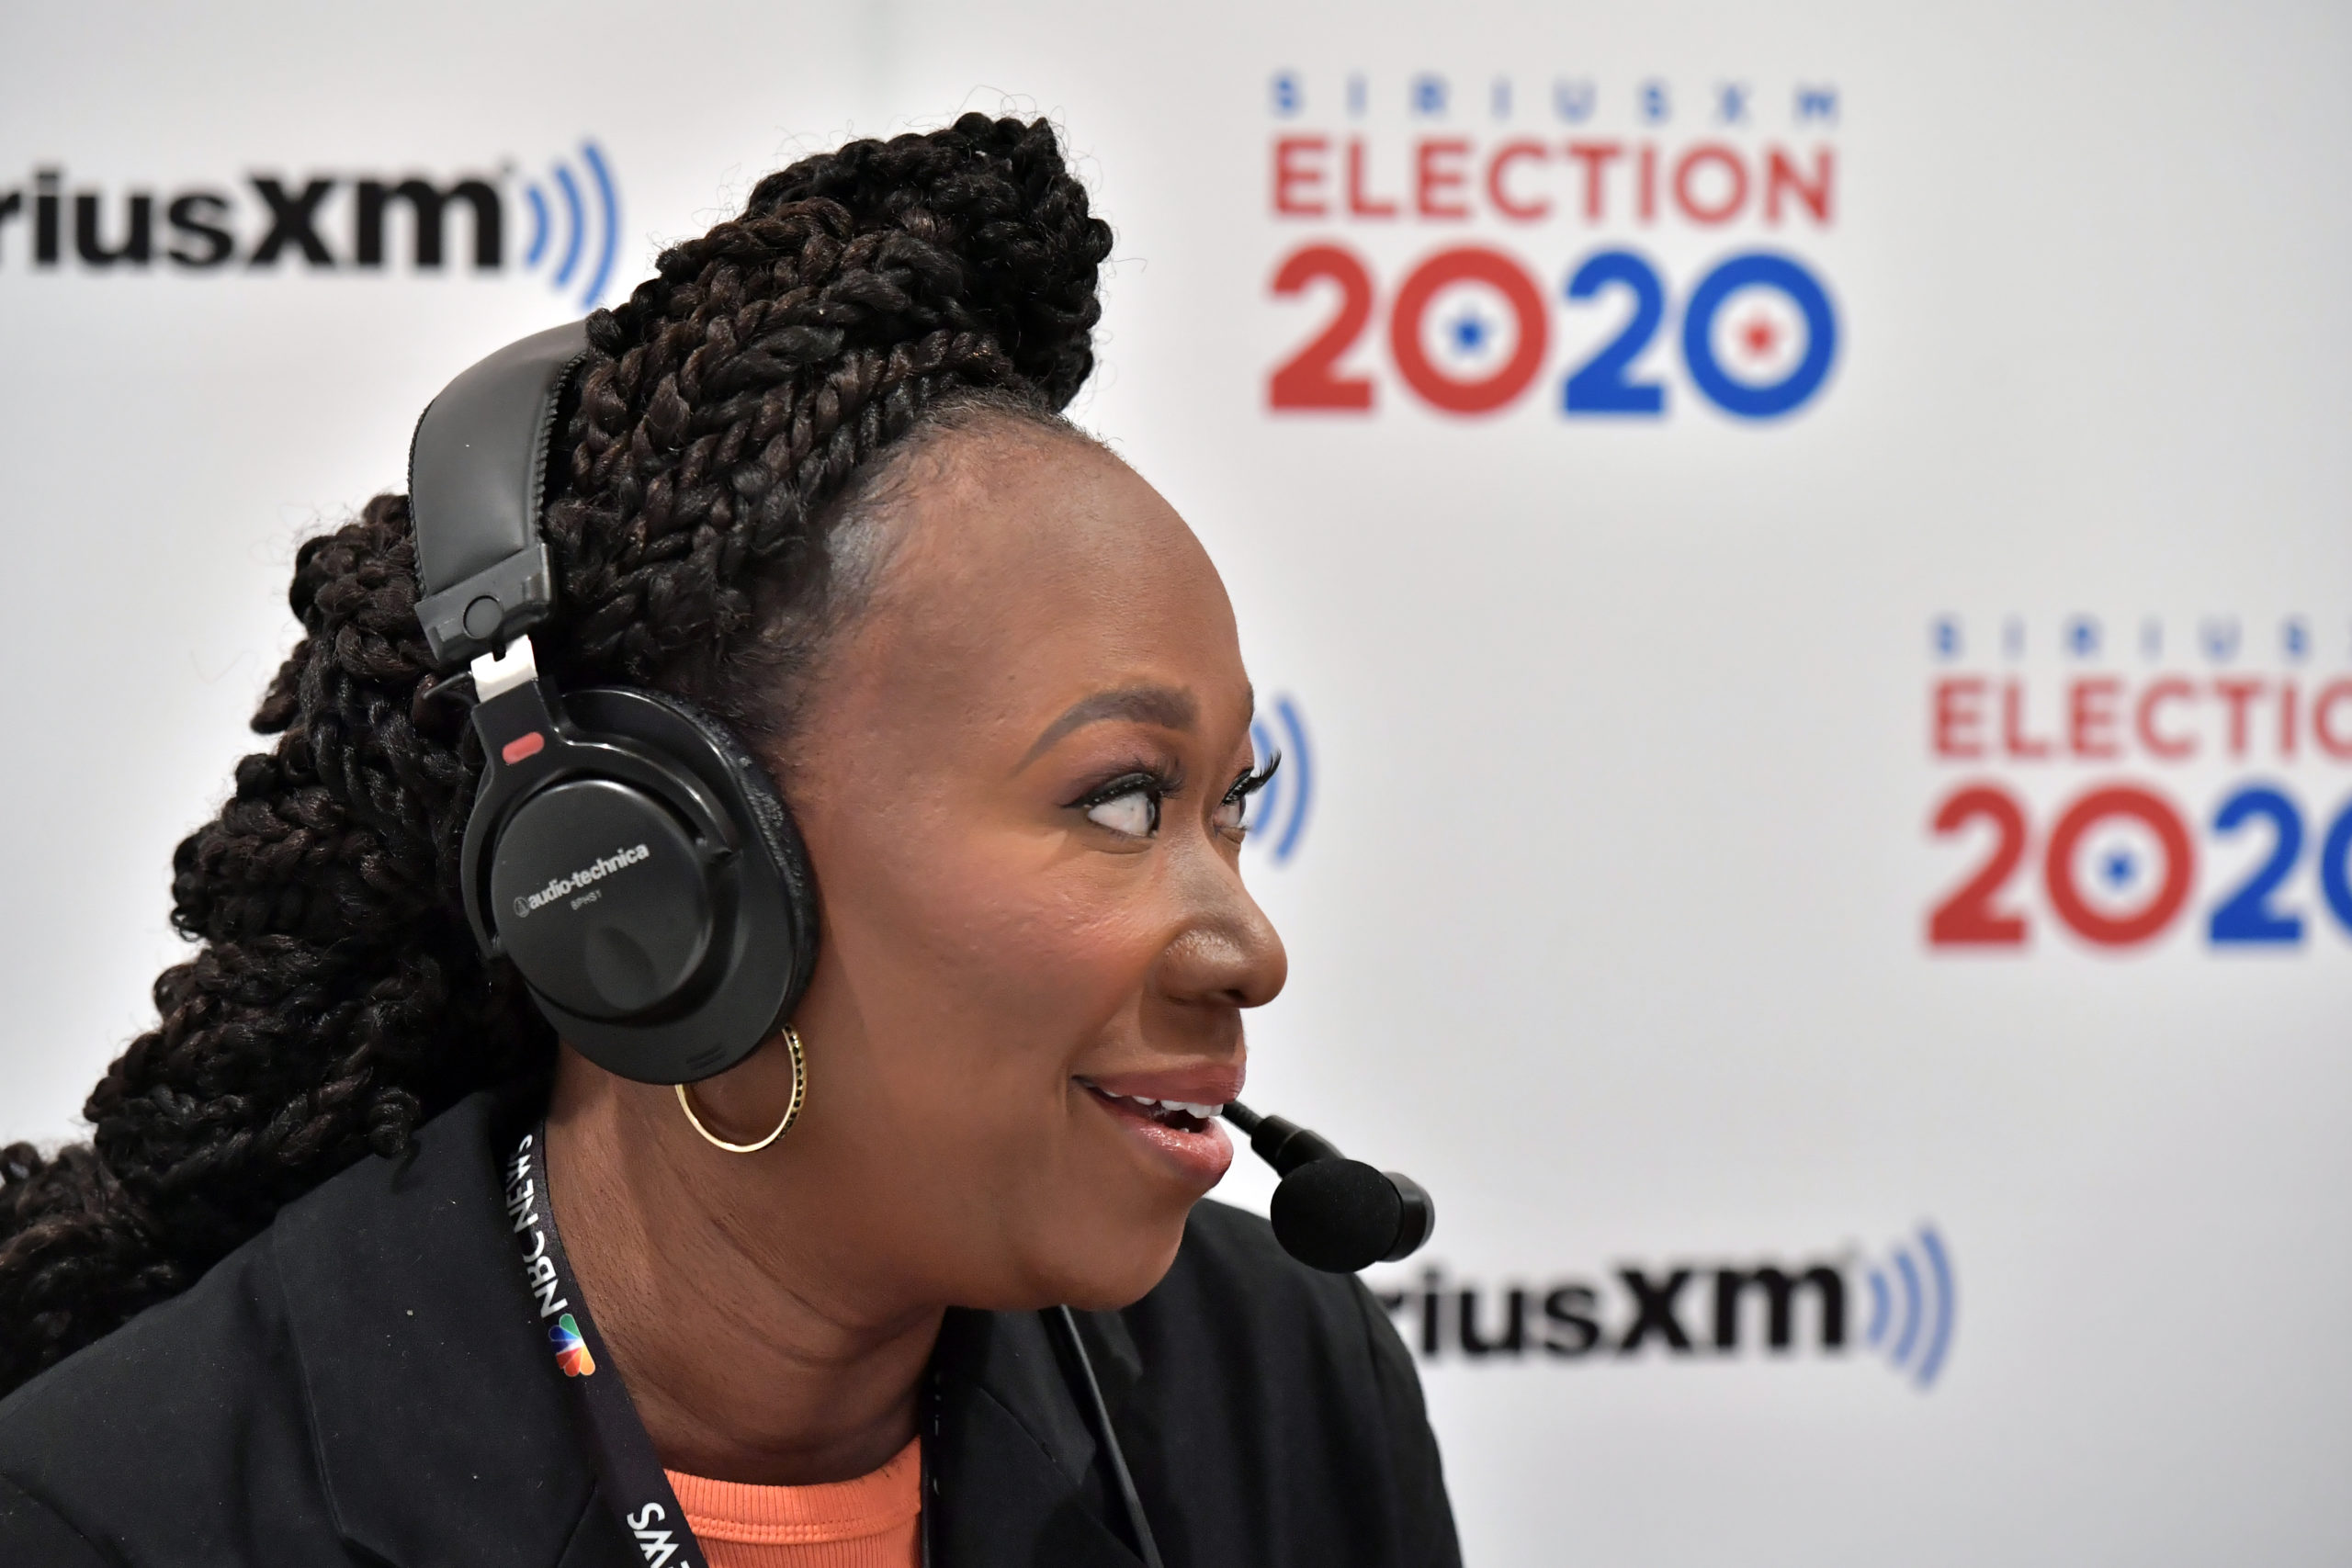 Sirius XM on air host Dean Obeidallah interviews MSNBC's Joy Reid at the DoubleTree by Hilton on February 10, 2020 in Manchester, New Hampshire. (Paul Marotta/Getty Images for SiriusXM)